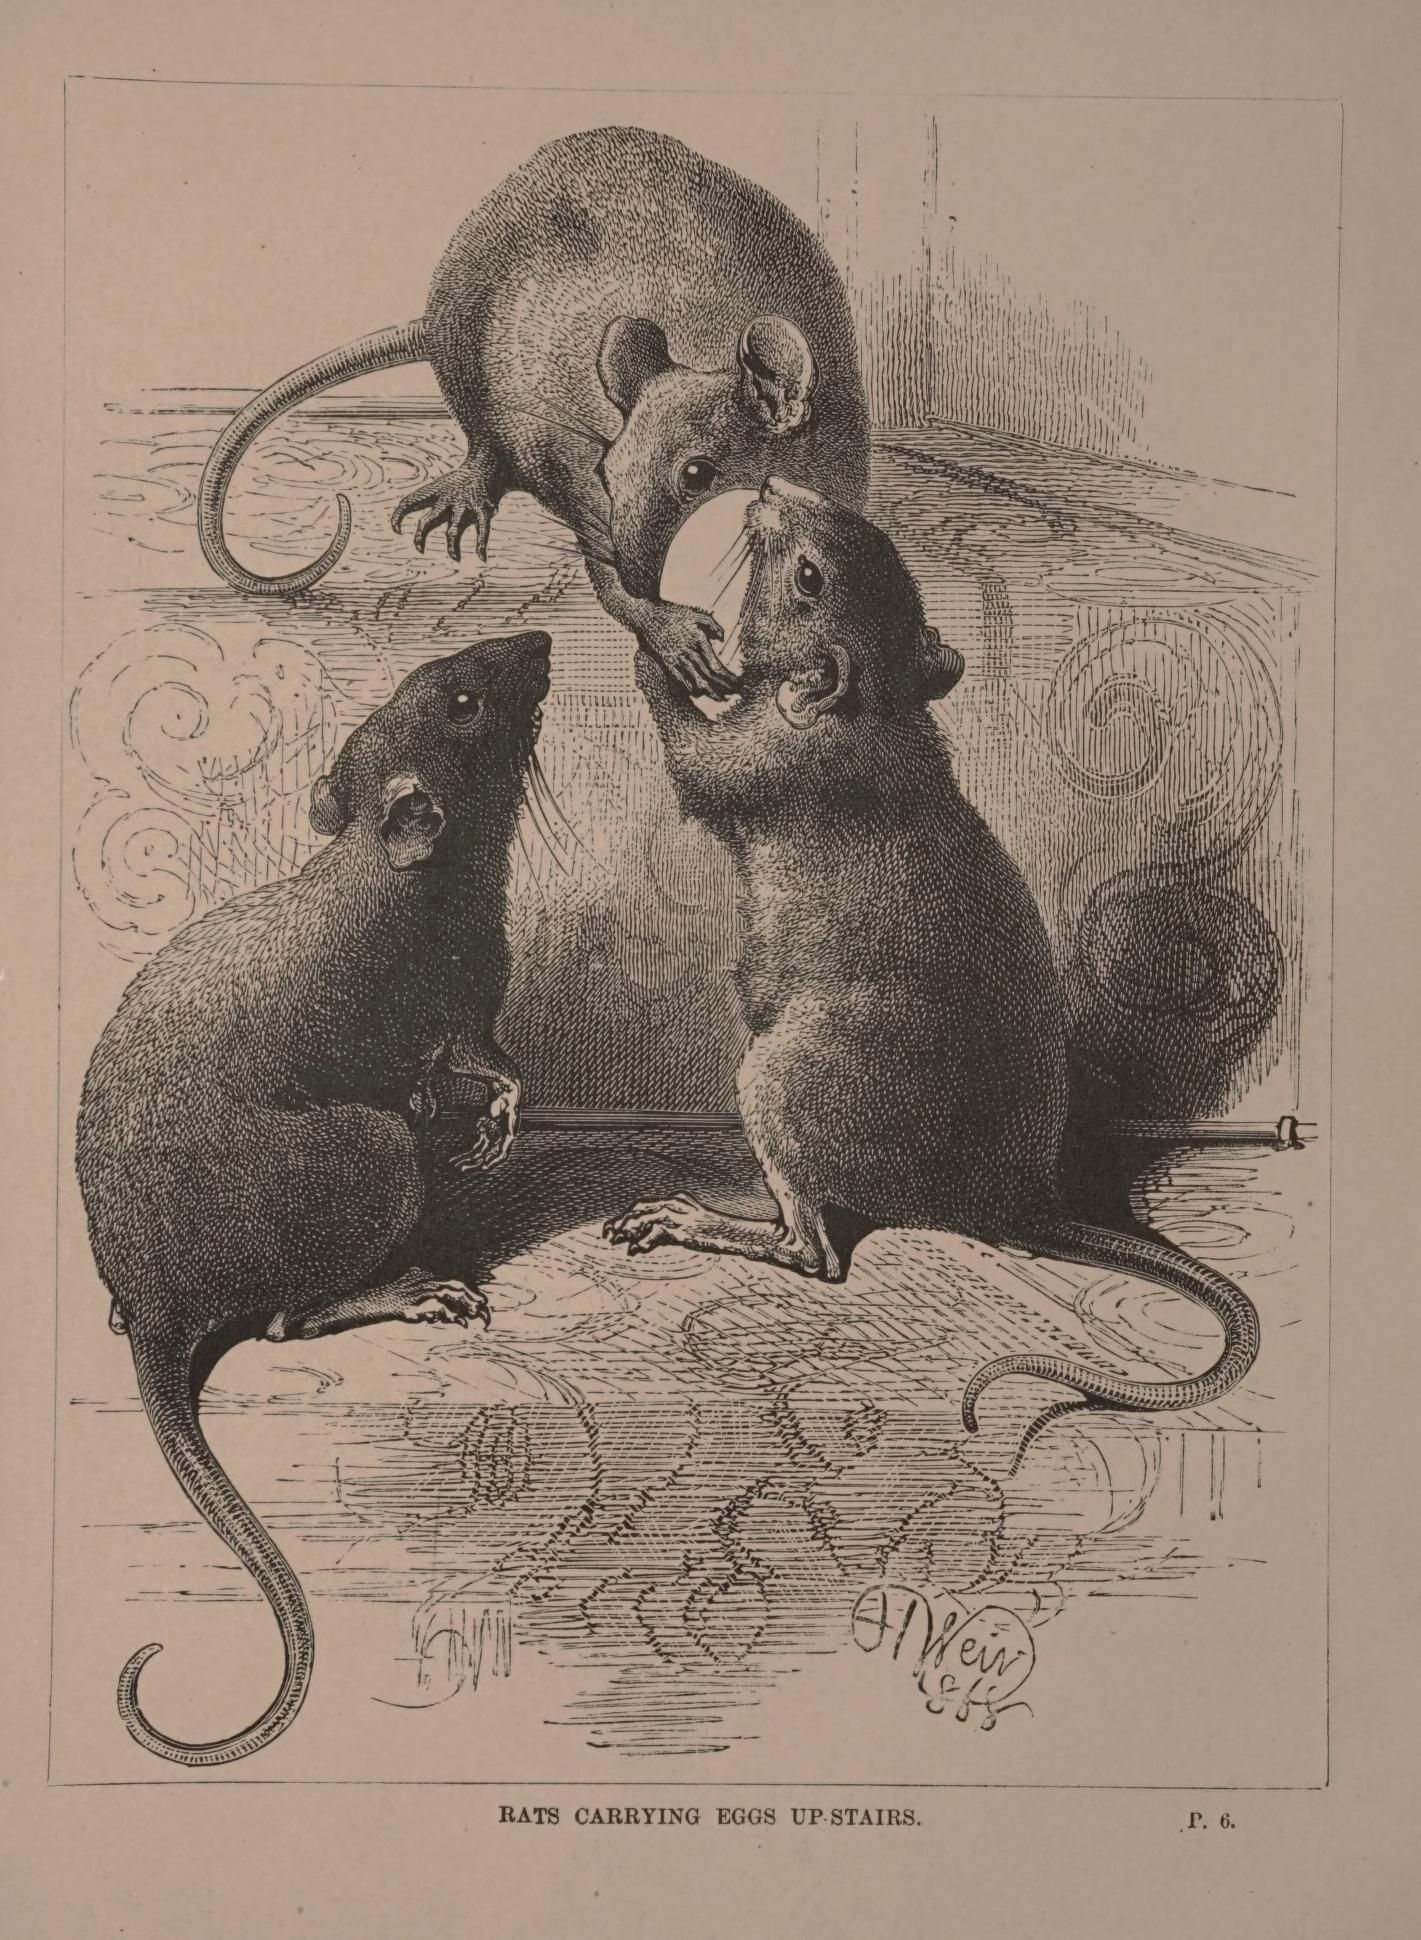 500+ Best Rodentia images in 2020 | rodents, animals, cute animals